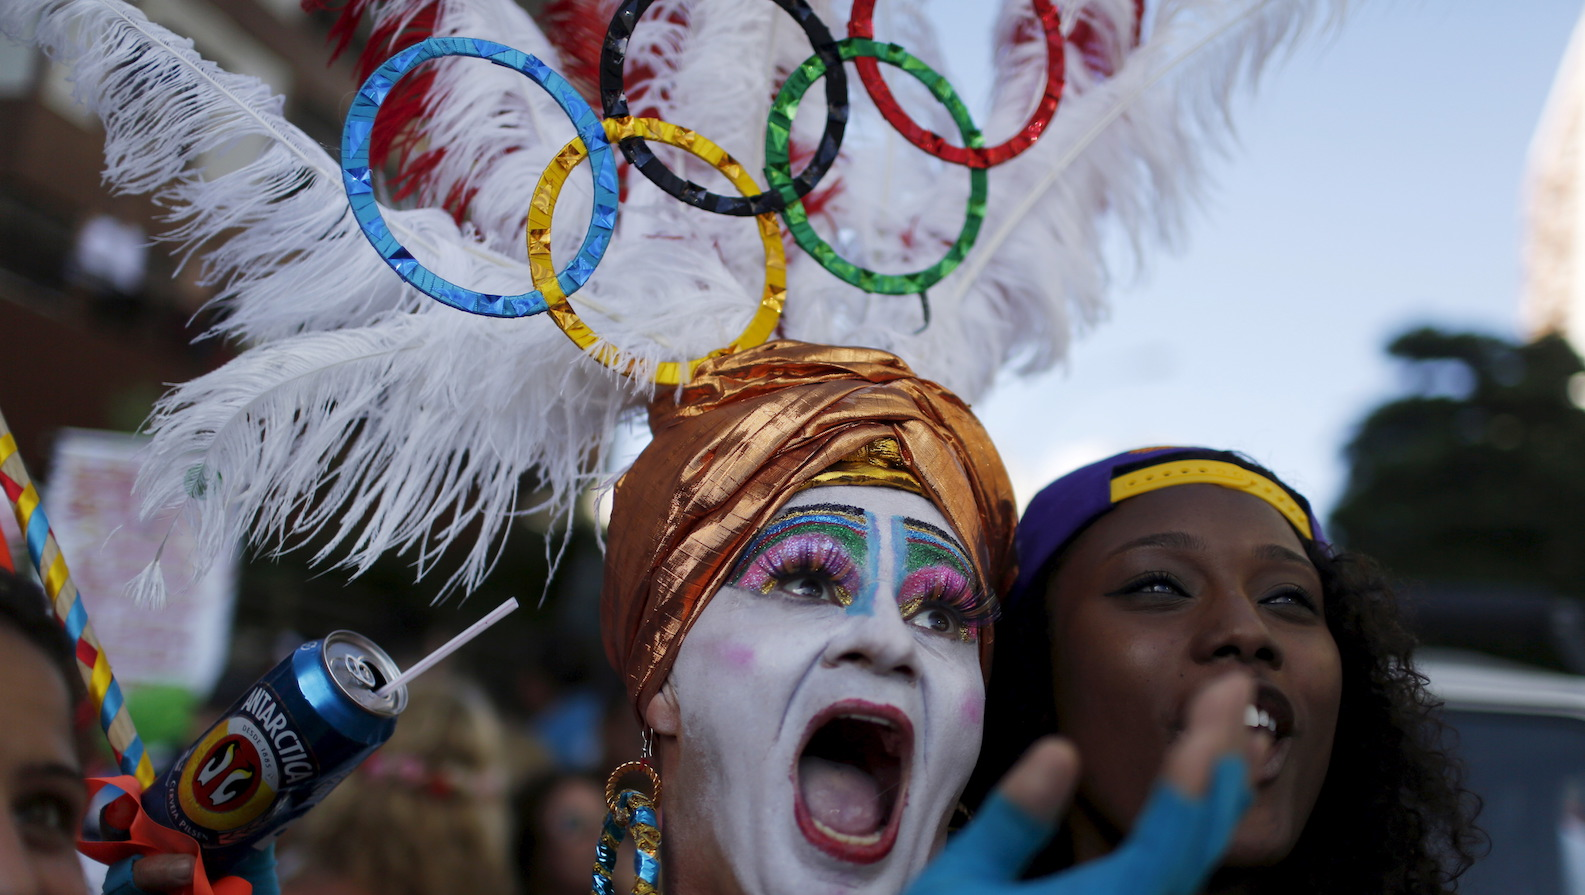 """A reveller poses for a selfie as he takes part in the annual block party known as the """"Banda de Ipanema"""" during pre-carnival festivities on Ipanema beach in Rio de Janeiro, Brazil, January 23, 2016.  REUTERS/Pilar Olivares - RTX23Q2S"""